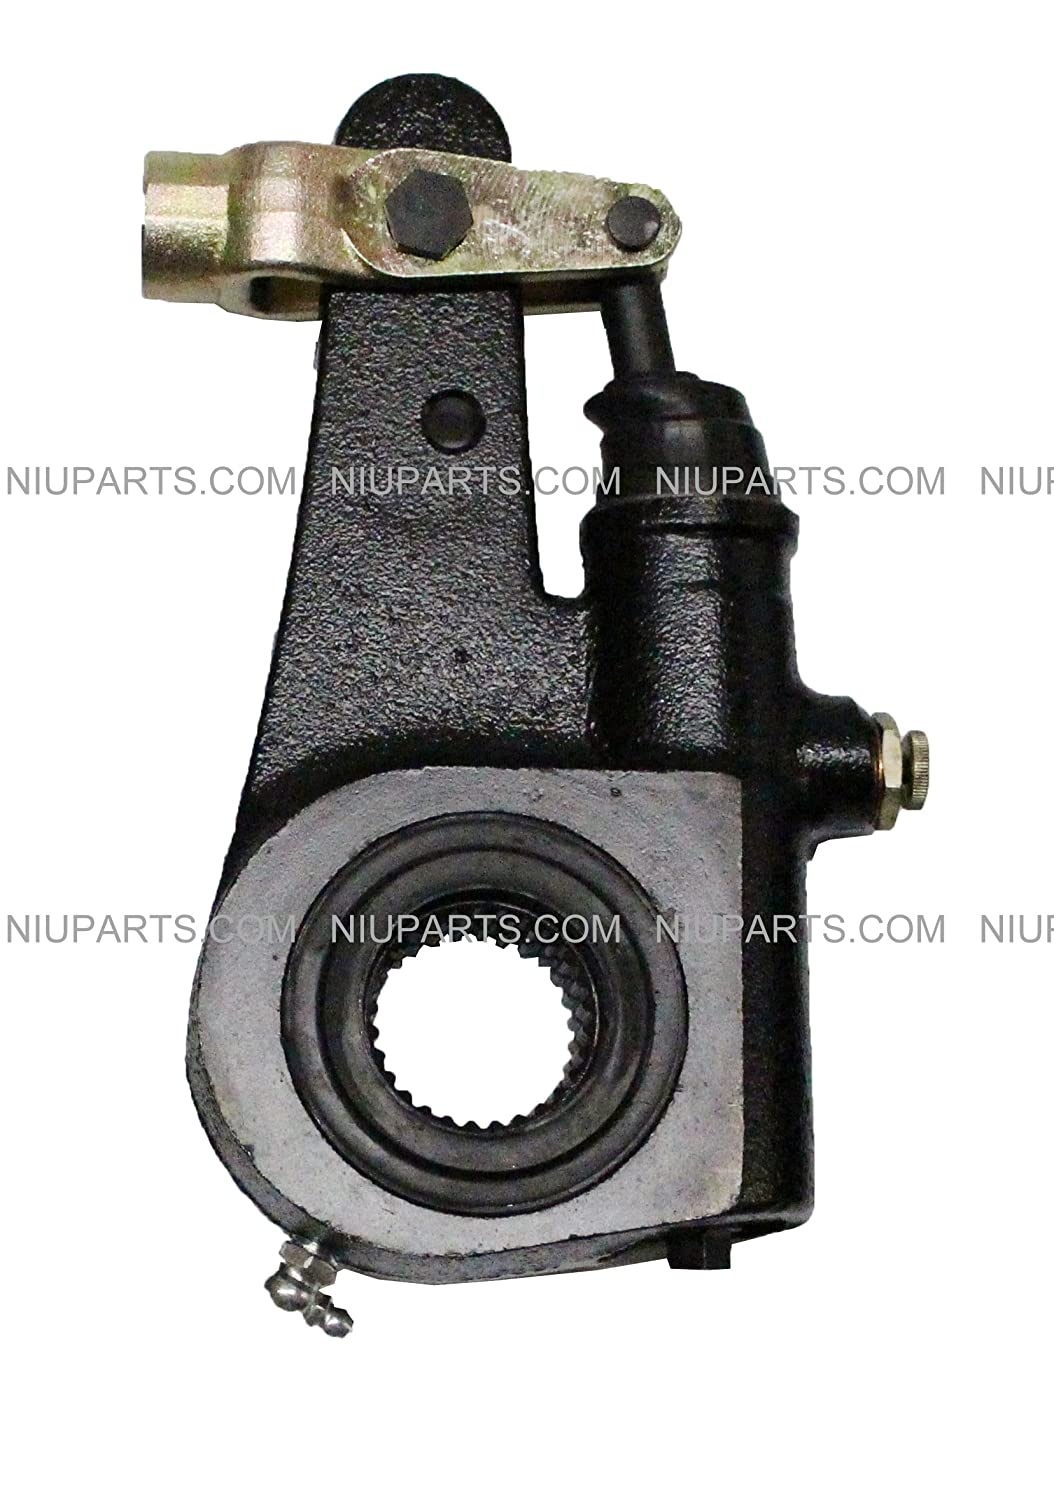 Slack Adjuster Automatic Meritor Type R801073 NIUPARTS